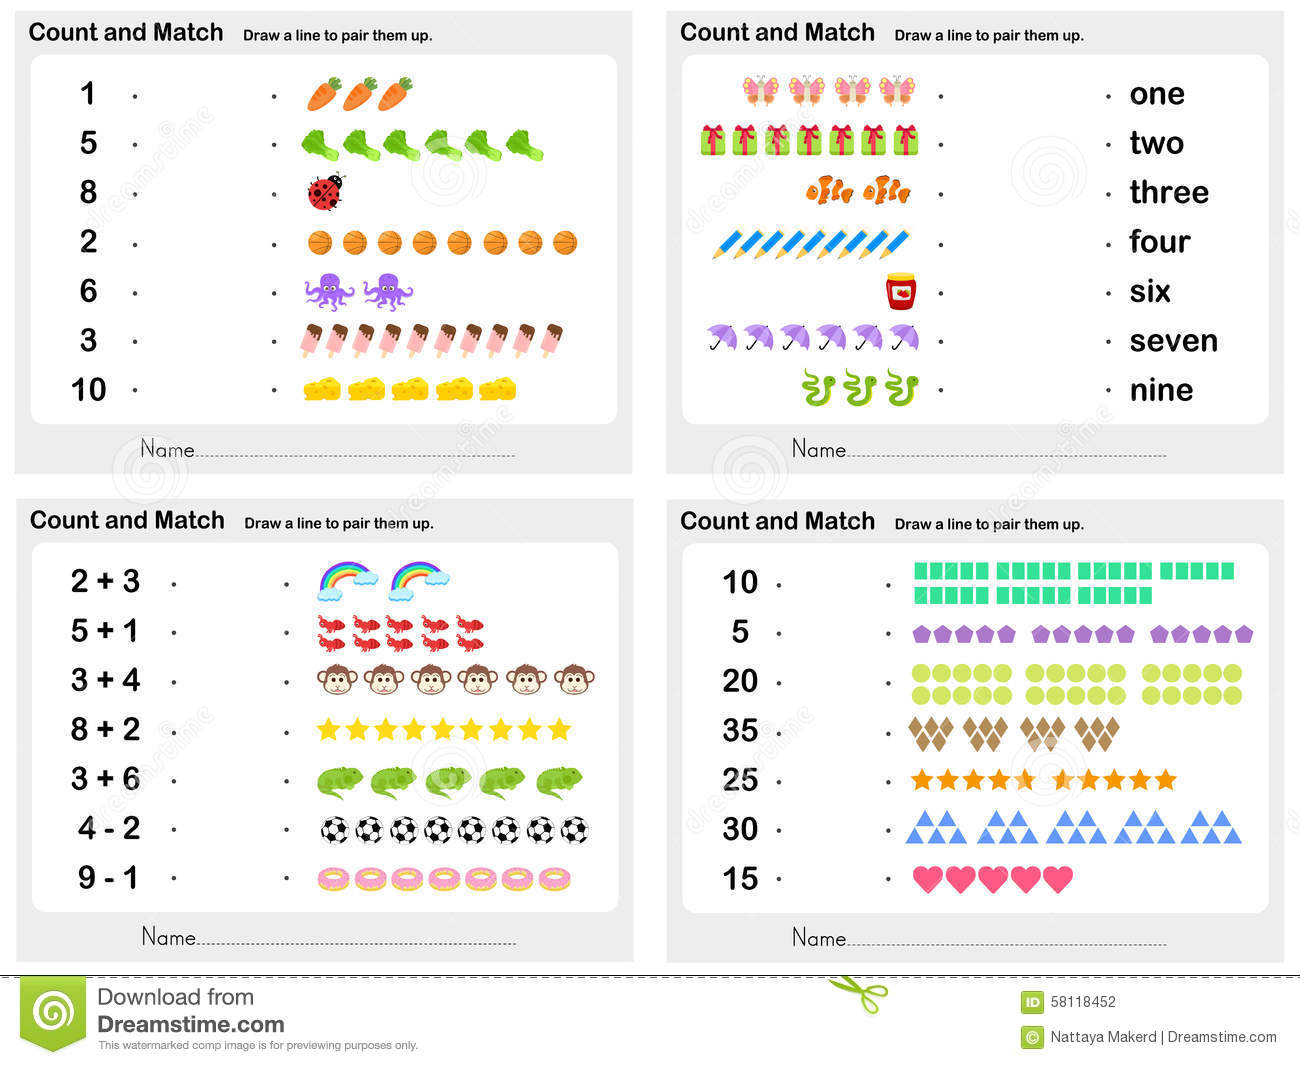 Matchmaking by numbers